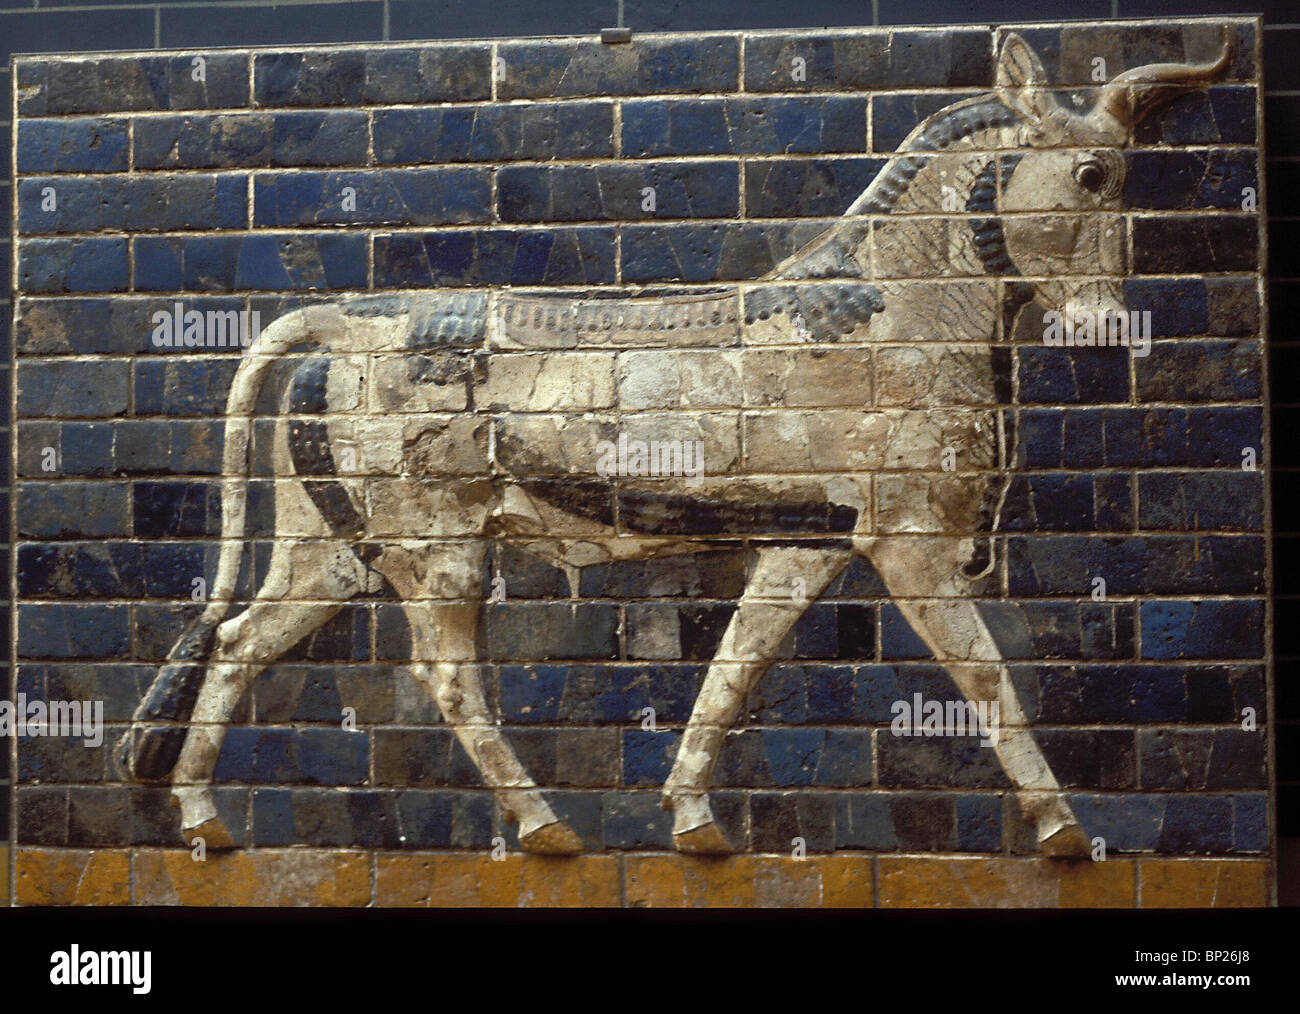 GLAZED BRICKWORK DEPICTING BULLS (DETAIL) FROM THE ISHTAR GATE ONE OF THE ENTRANCES TO THE CITY OF BABYLON. BUILT Stock Photo